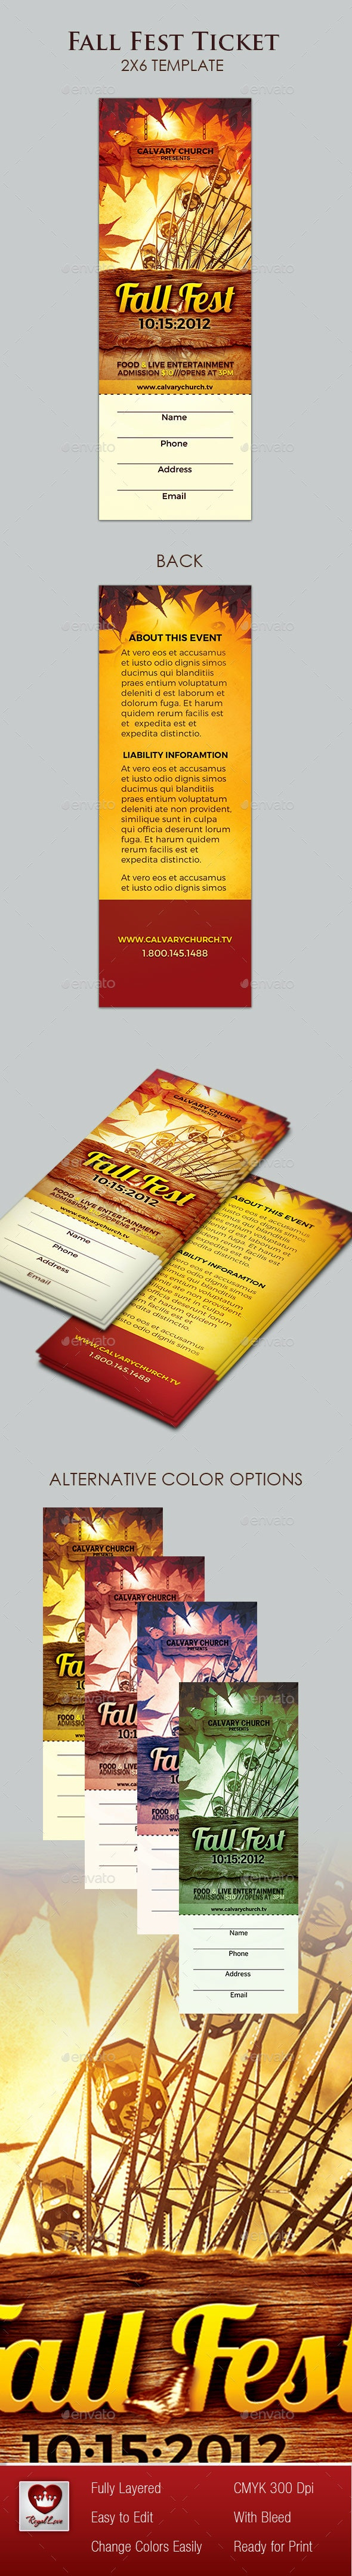 Fall Fest Ticket - Miscellaneous Events